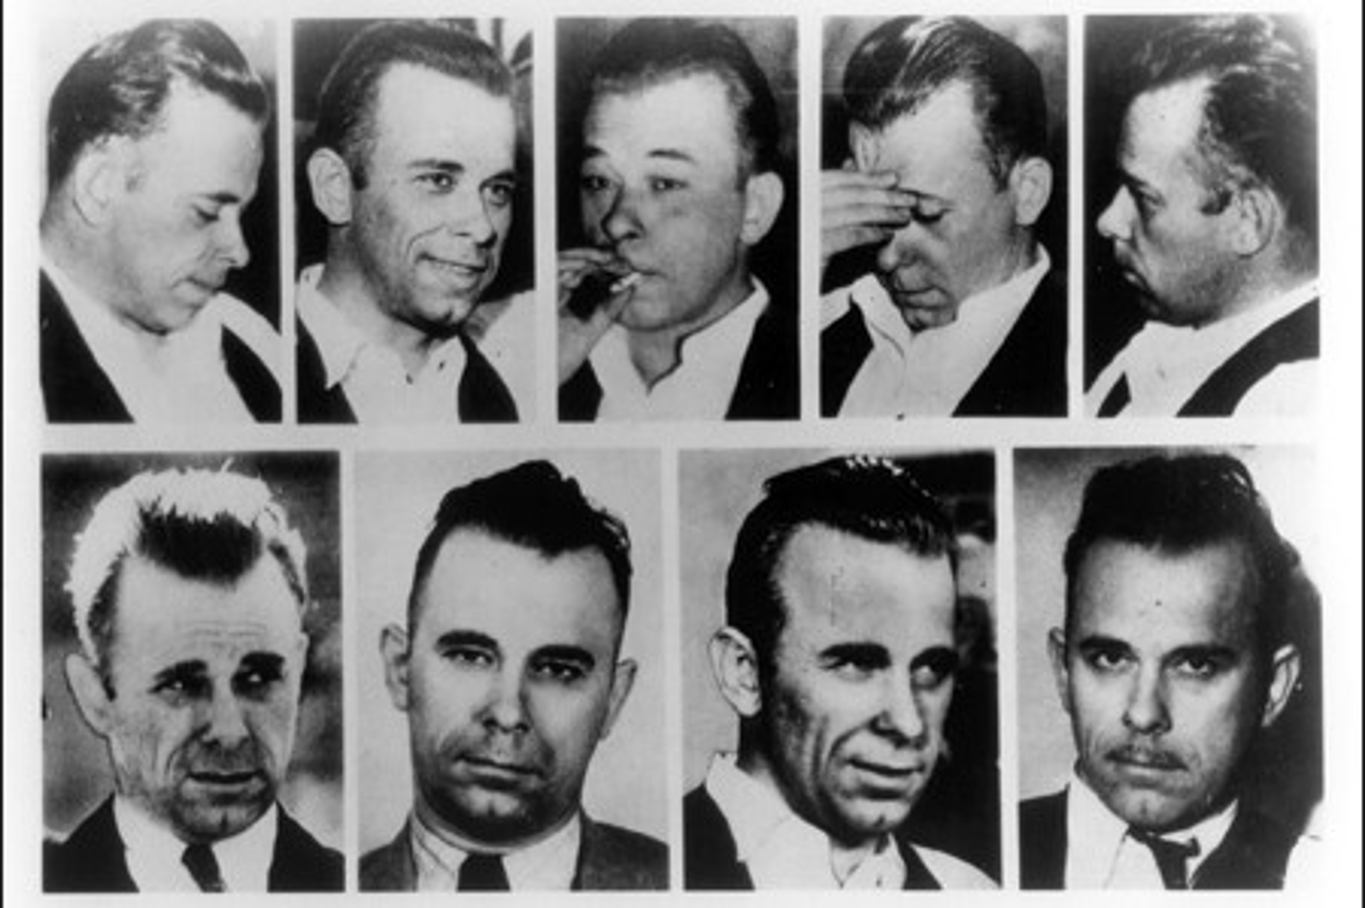 The many faces of gangster John Dillinger.